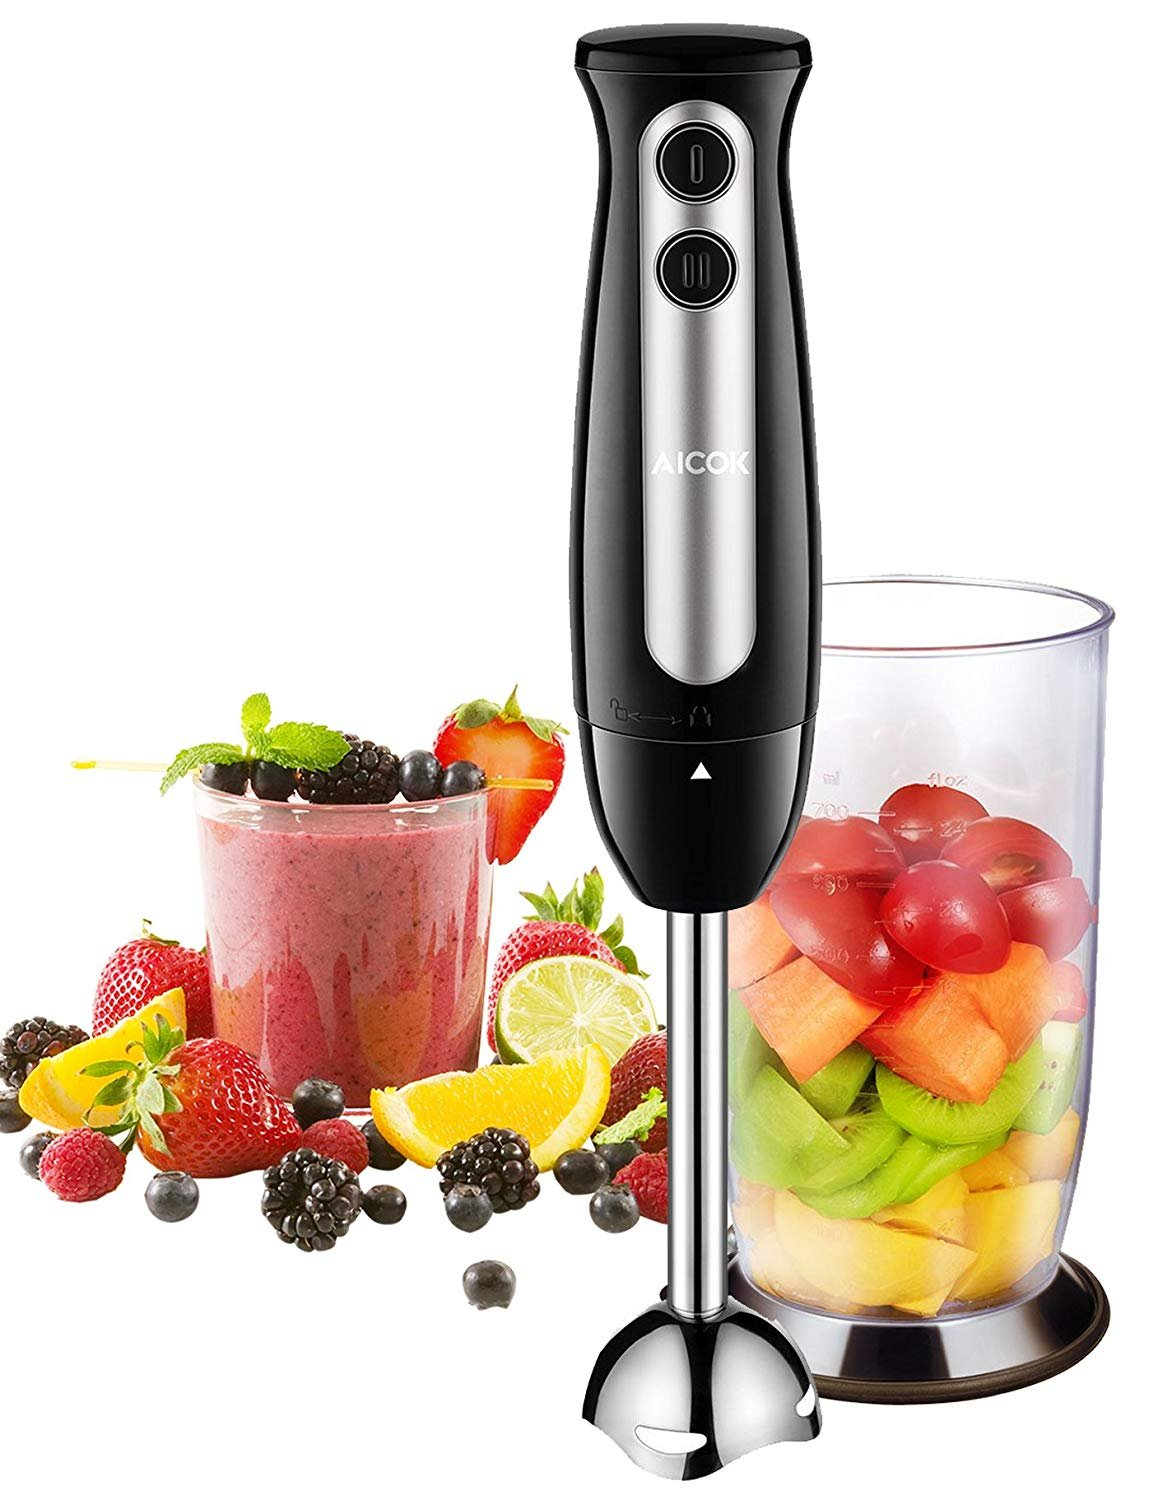 Hand Blender, Powerful Multi-Purpose Immersion Stick Blender Mixer Includes 700ml BPA-Free Beaker Stainless Steel Blades and Detachable Shaft, Black